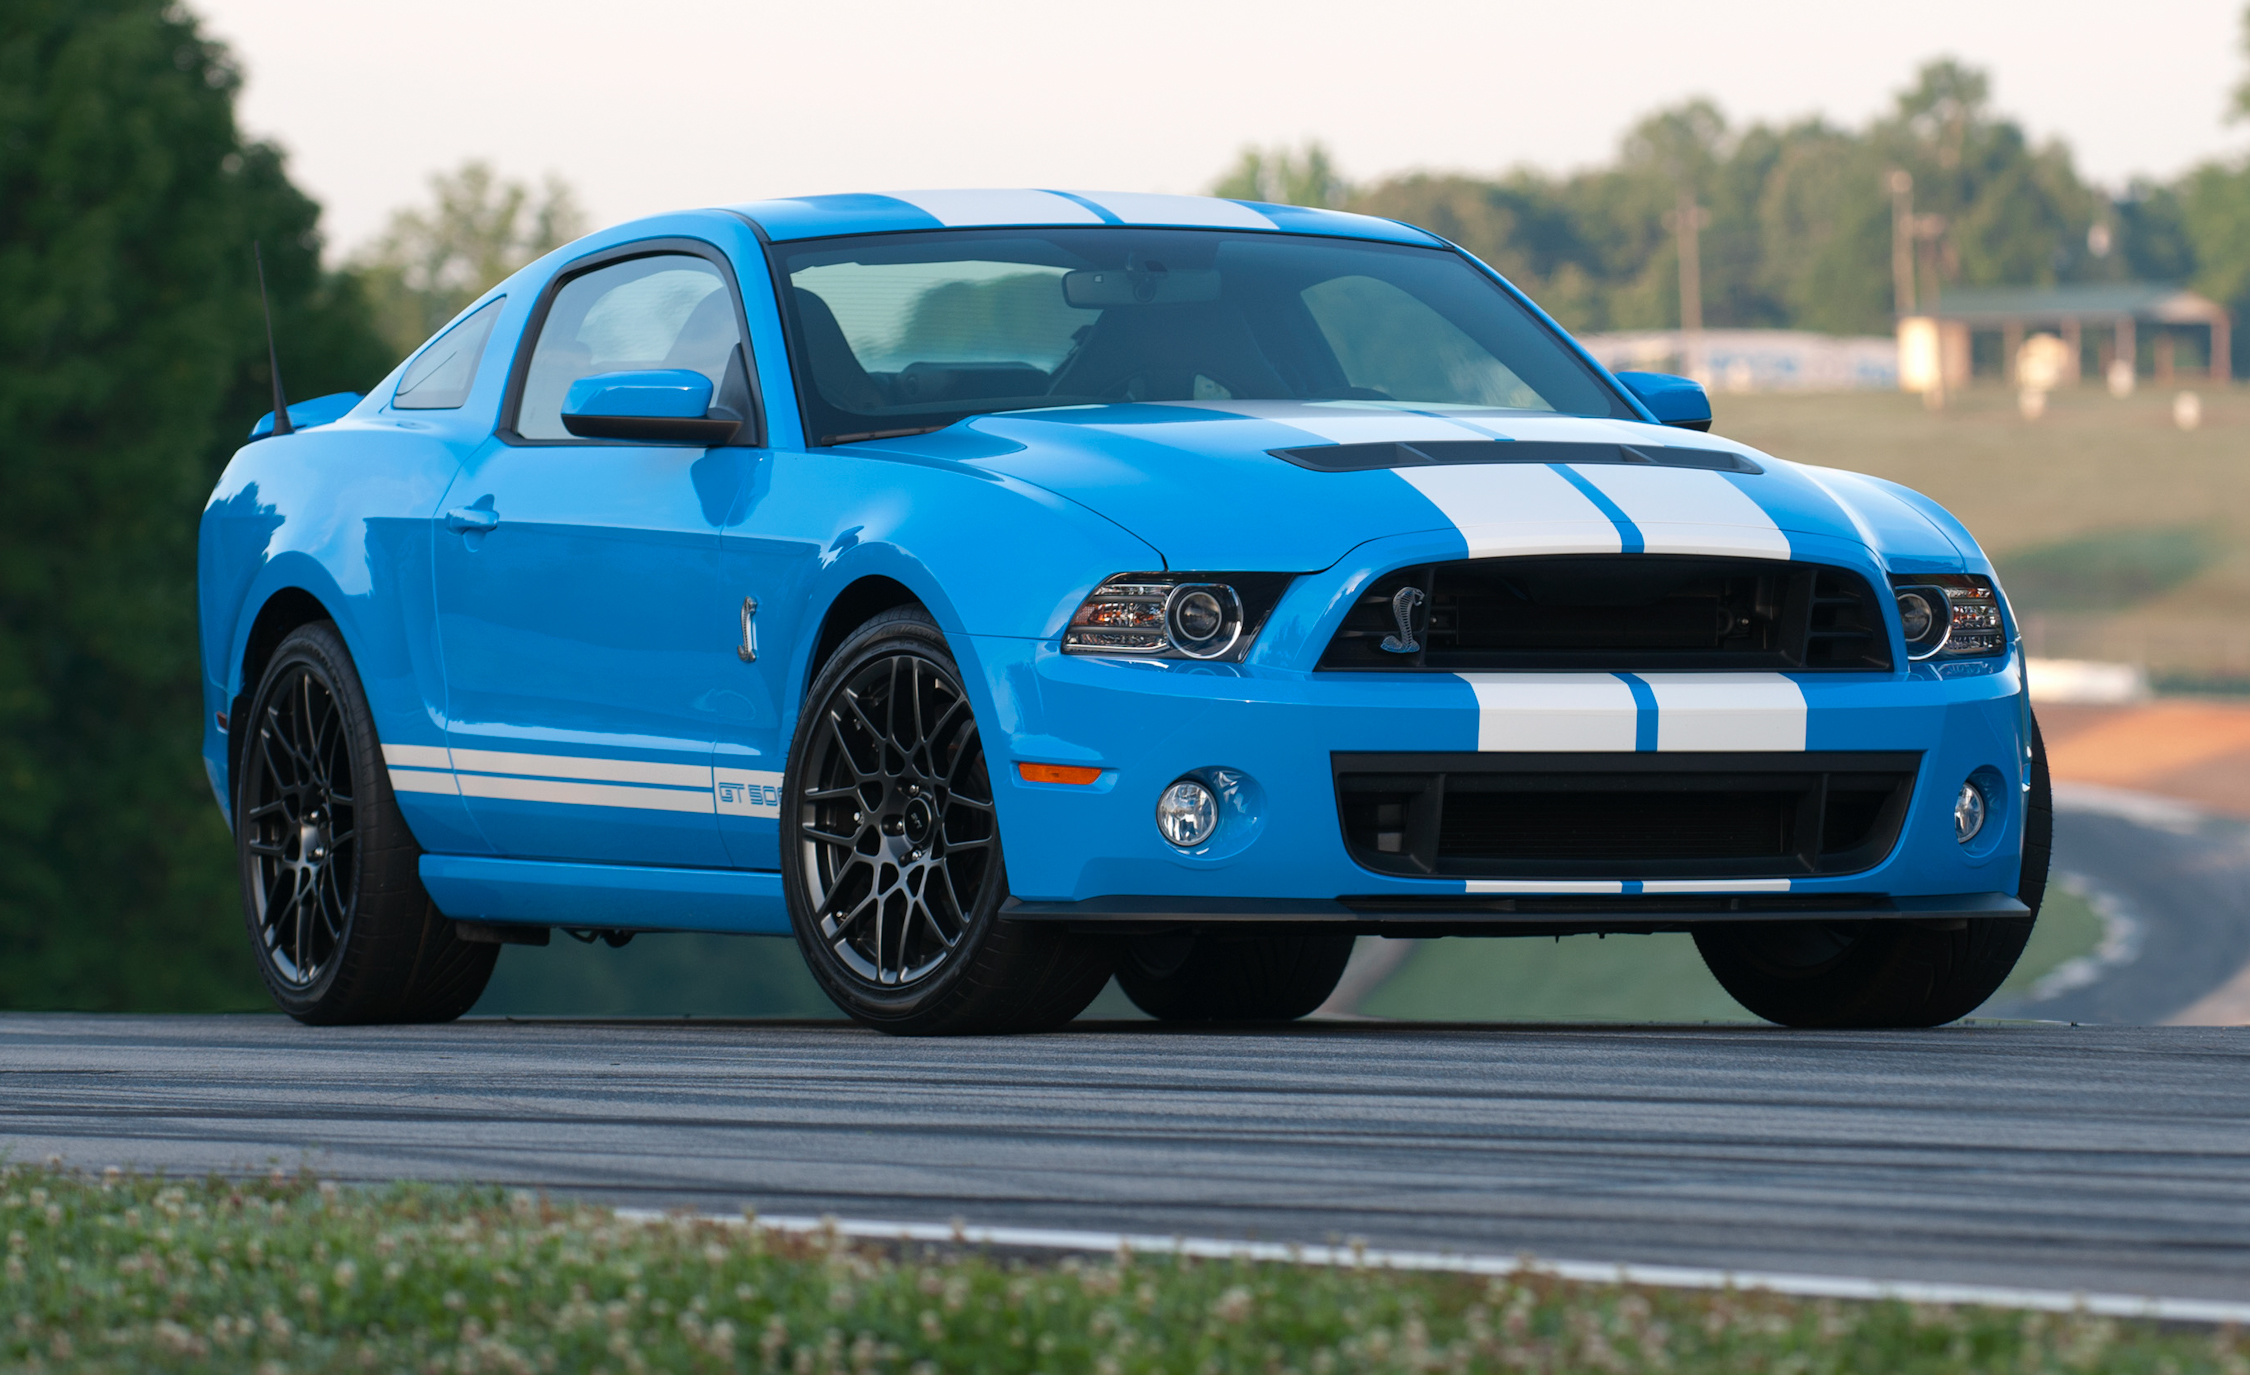 2013 Ford Mustang Shelby GT500 Blue Exterior (Photo 2 of 47)